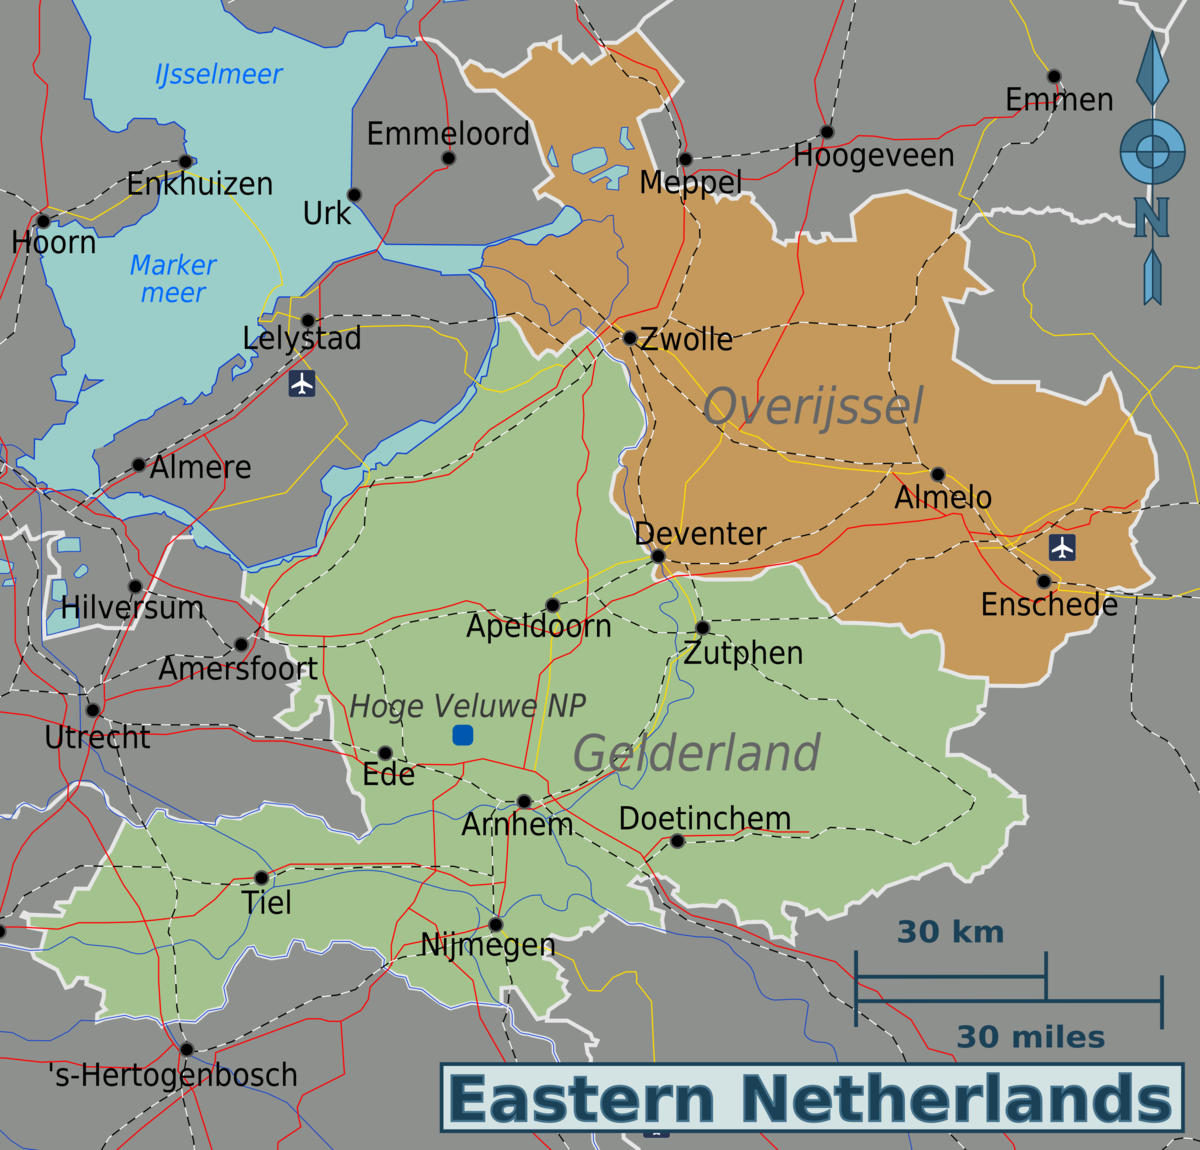 eastern netherlands travel guide at wikivoyage